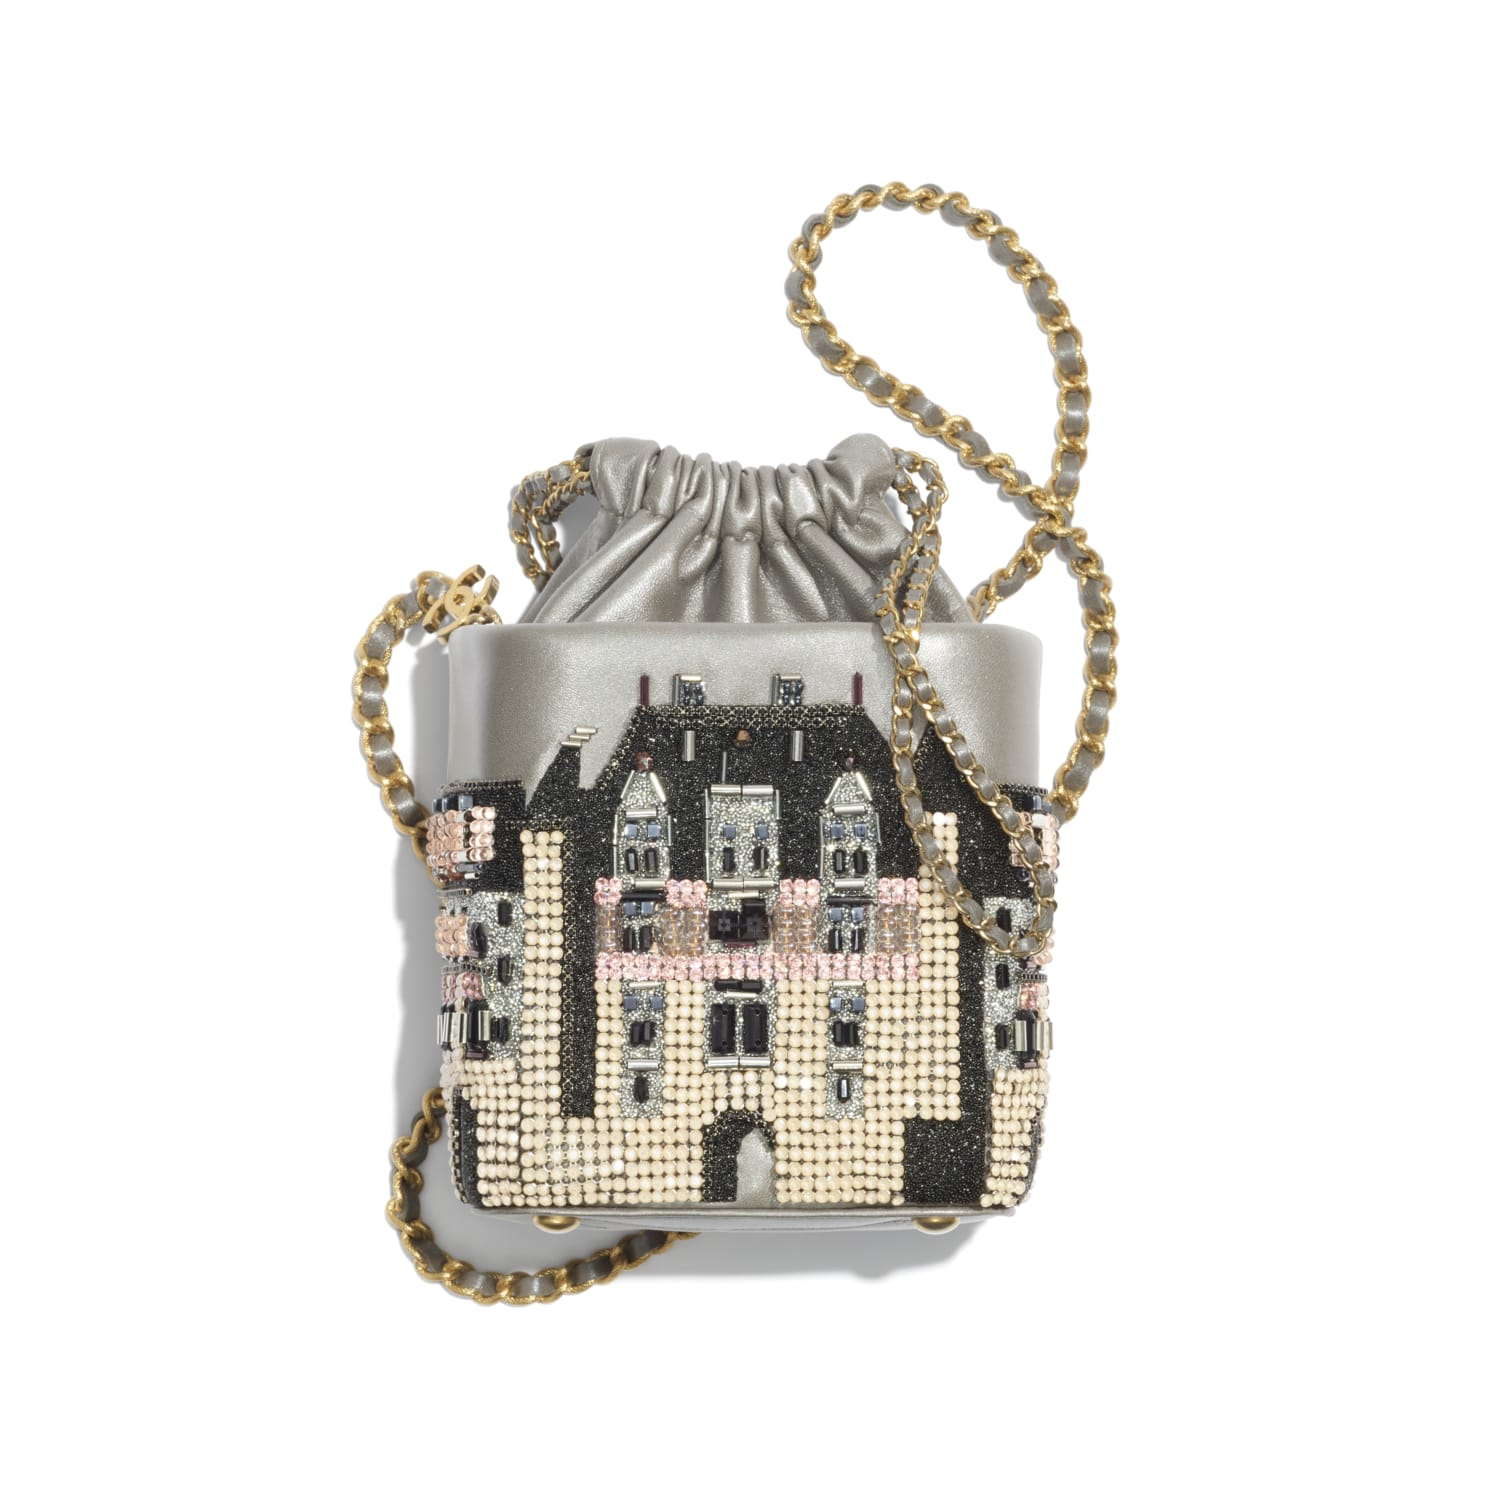 Chanel Small Bucket with Chain Métiers D'Art 2021